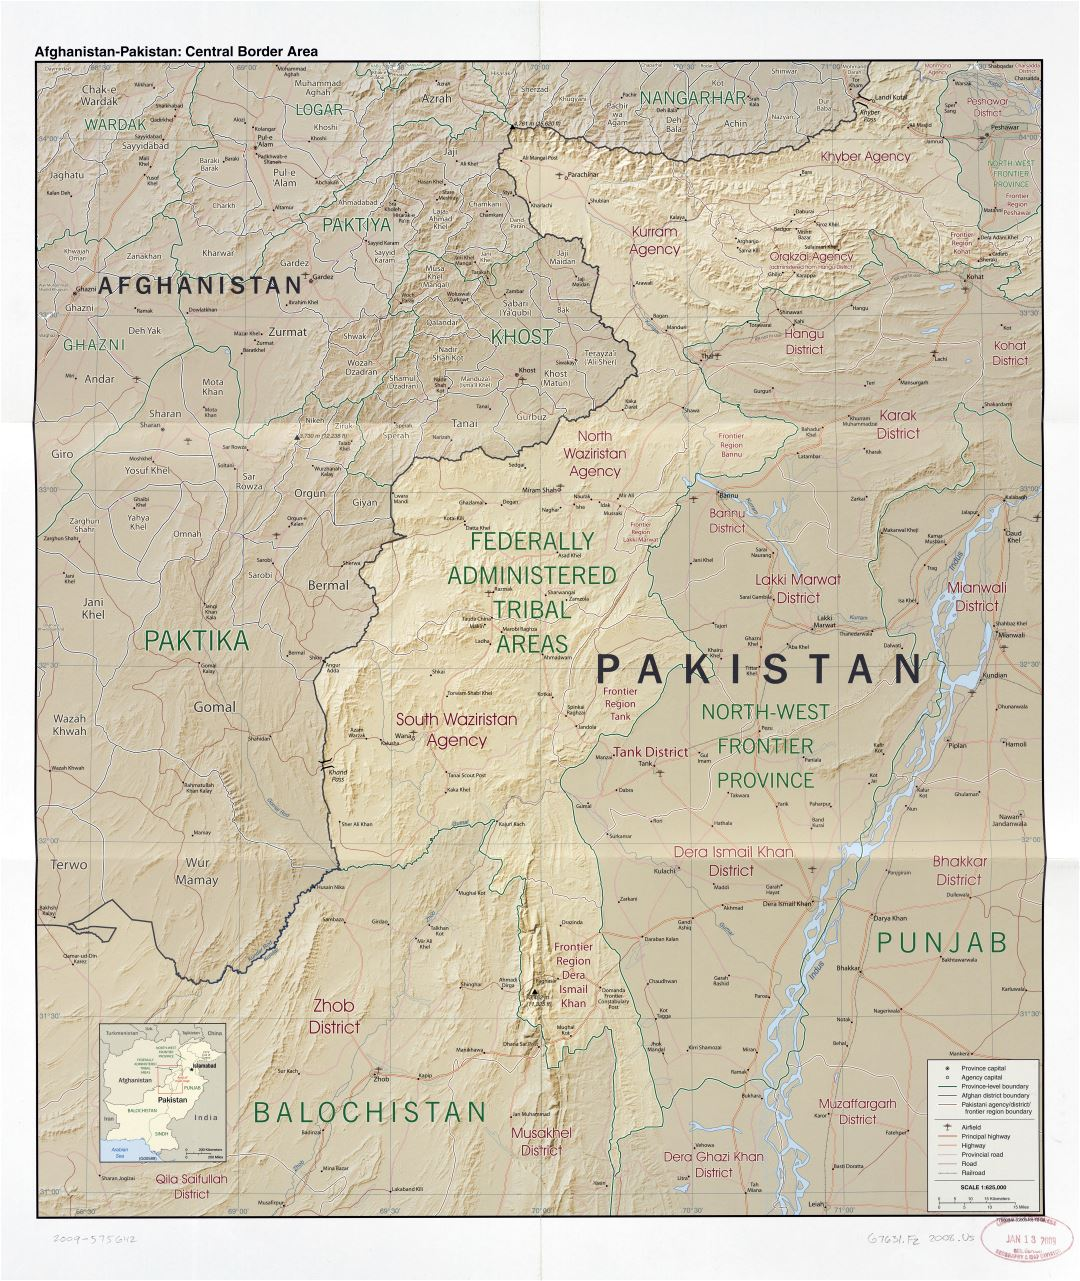 Large scale detailed Afghanistan - Pakistan central border area map with relief, administrative divisions, roads, railroads, airfields and cities - 2008